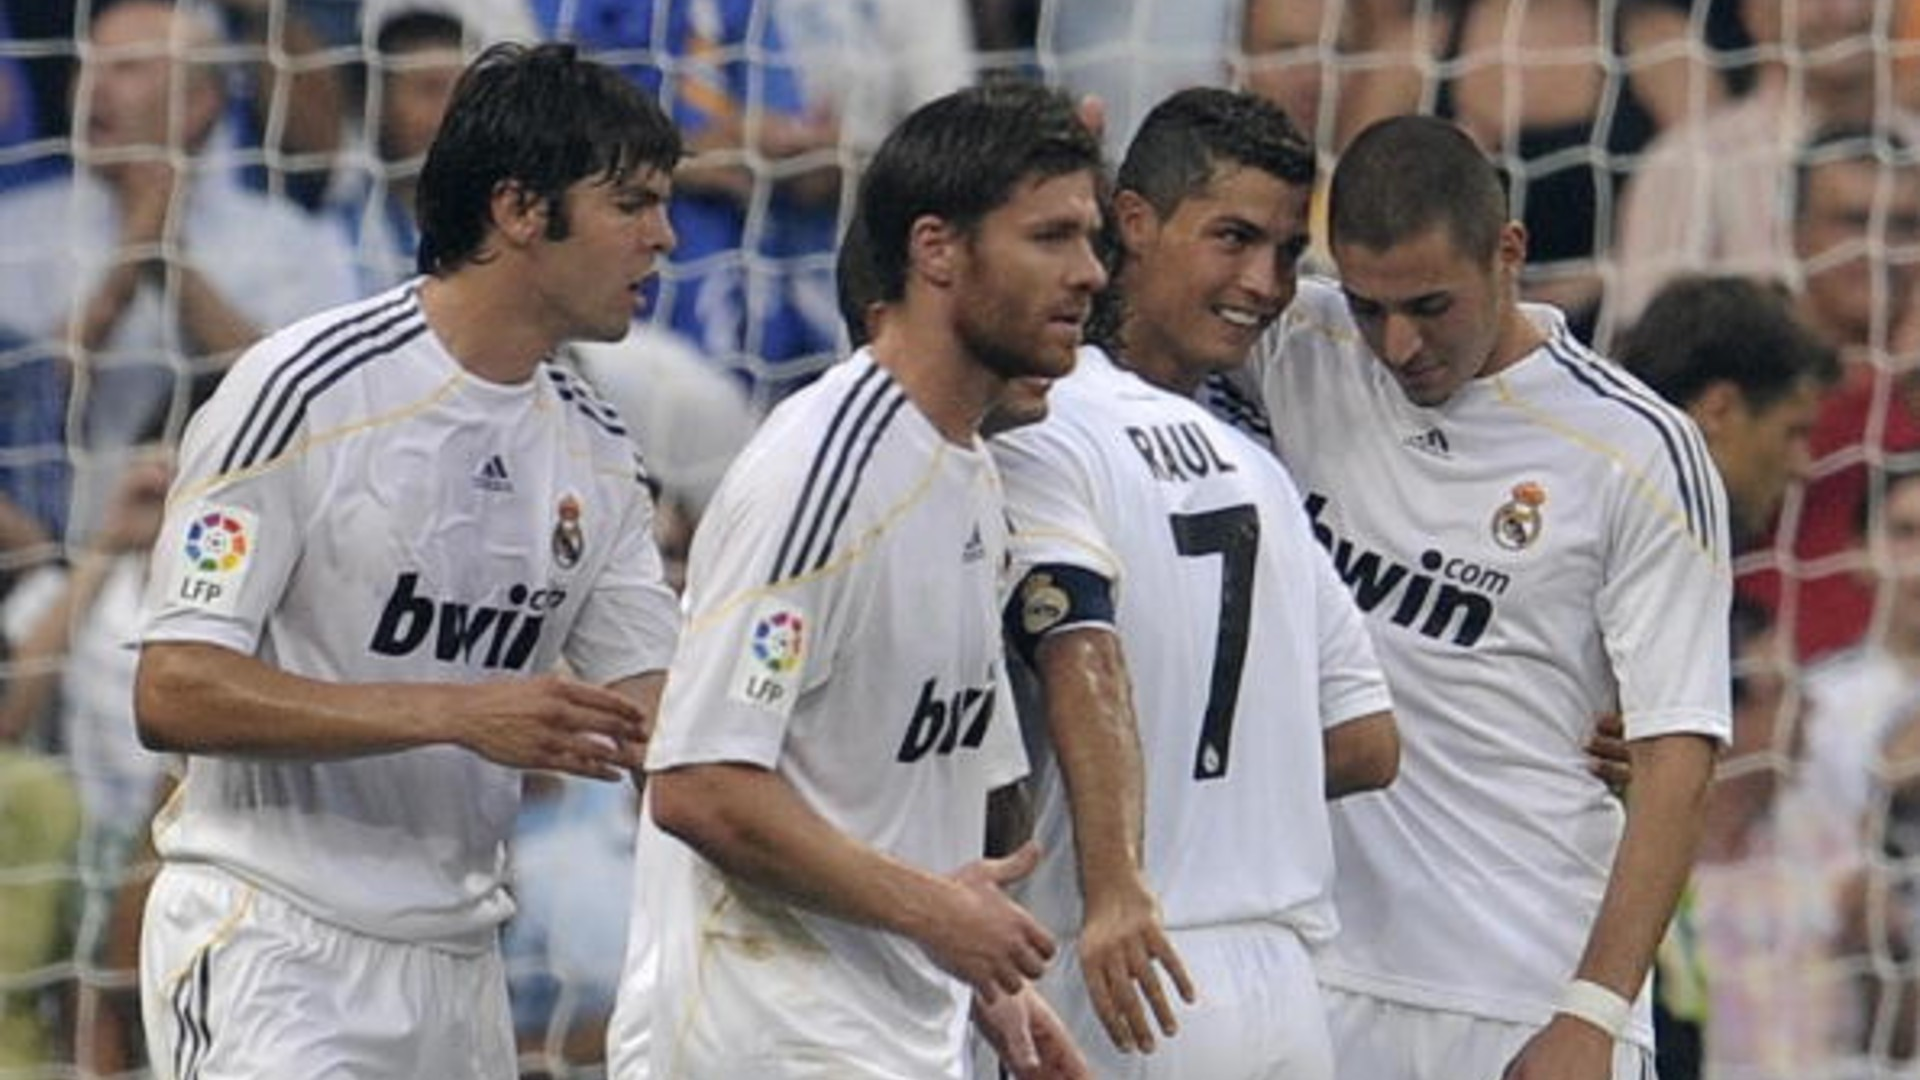 Cristiano Ronaldo's dream debut for Real Madrid - Who were his teammates and where are they now?